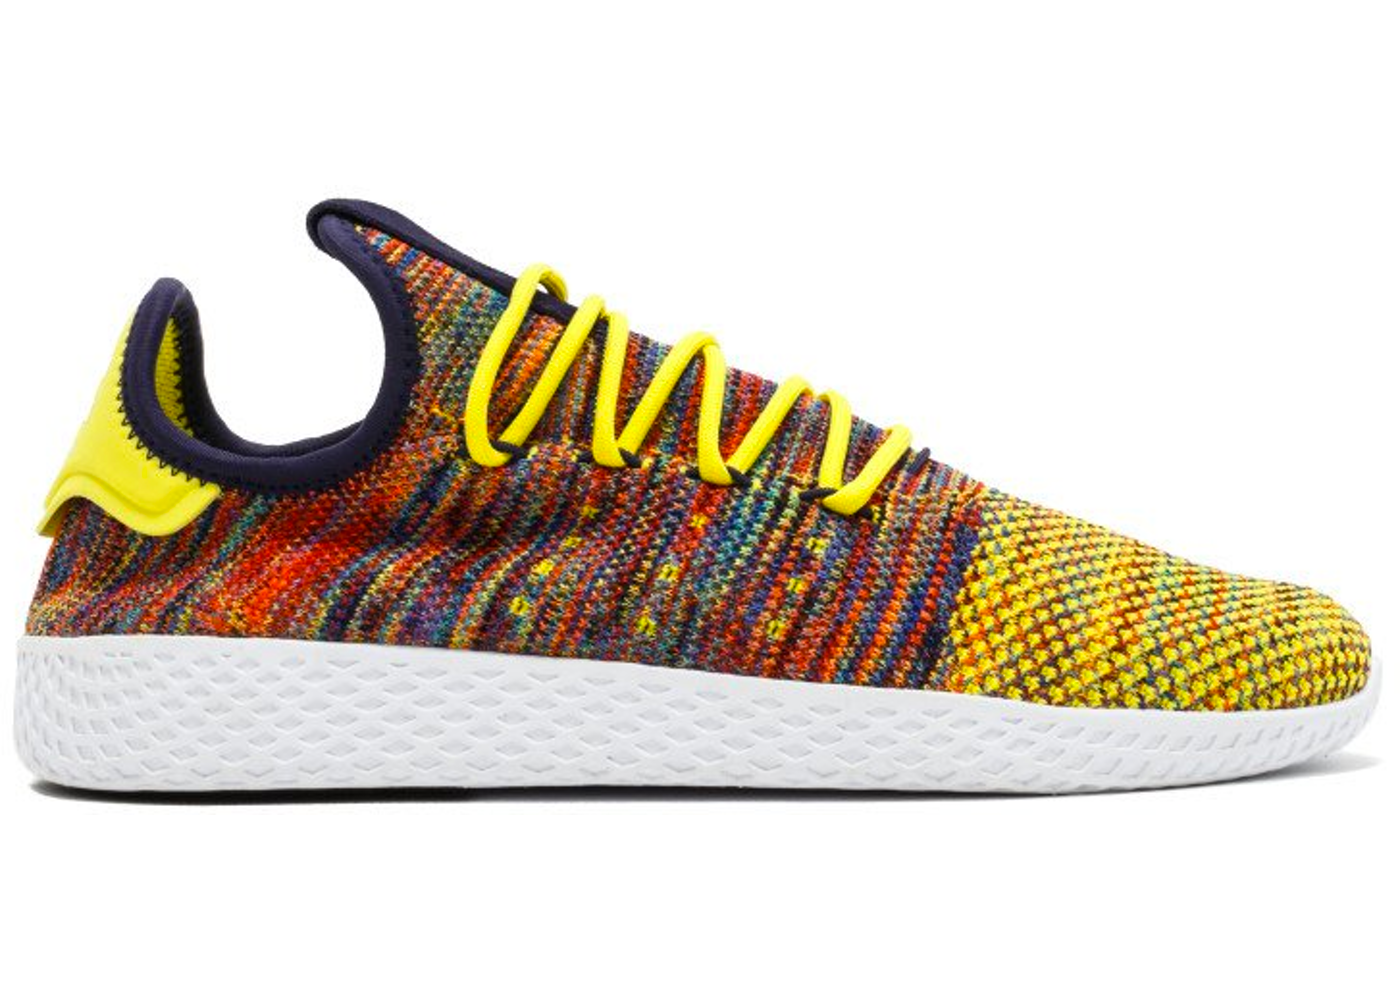 3ba69a6d4 Pharrell Williams x adidas Tennis Hu Multi-Color - StockX News